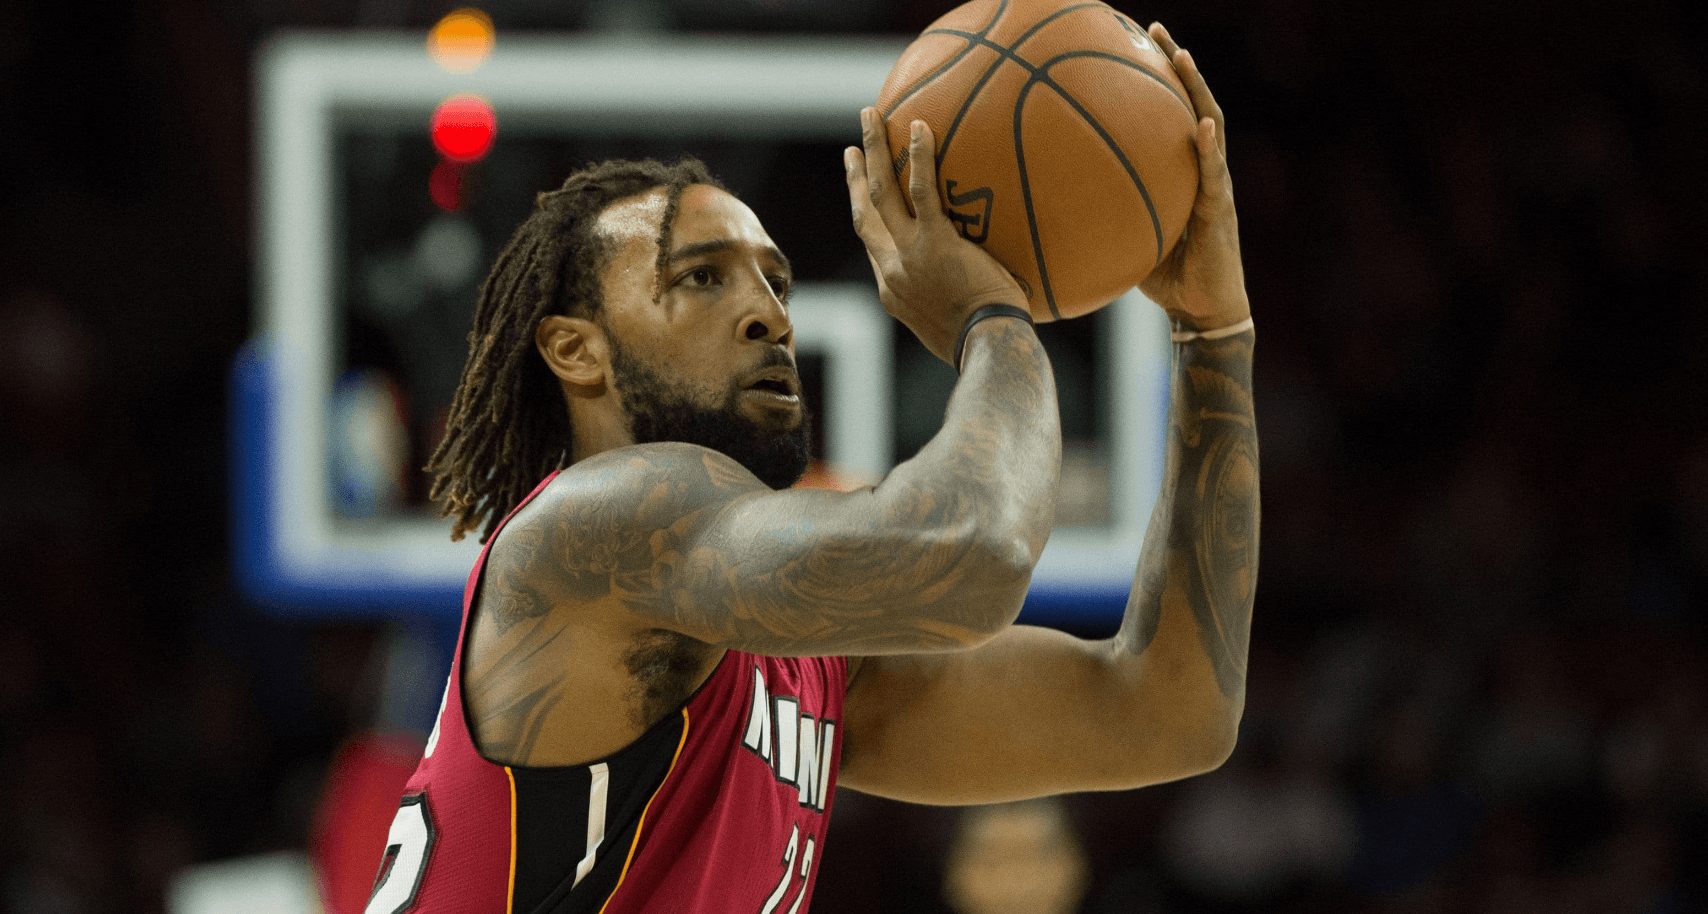 Will the Cavs keep Derrick Williams after good first impression?